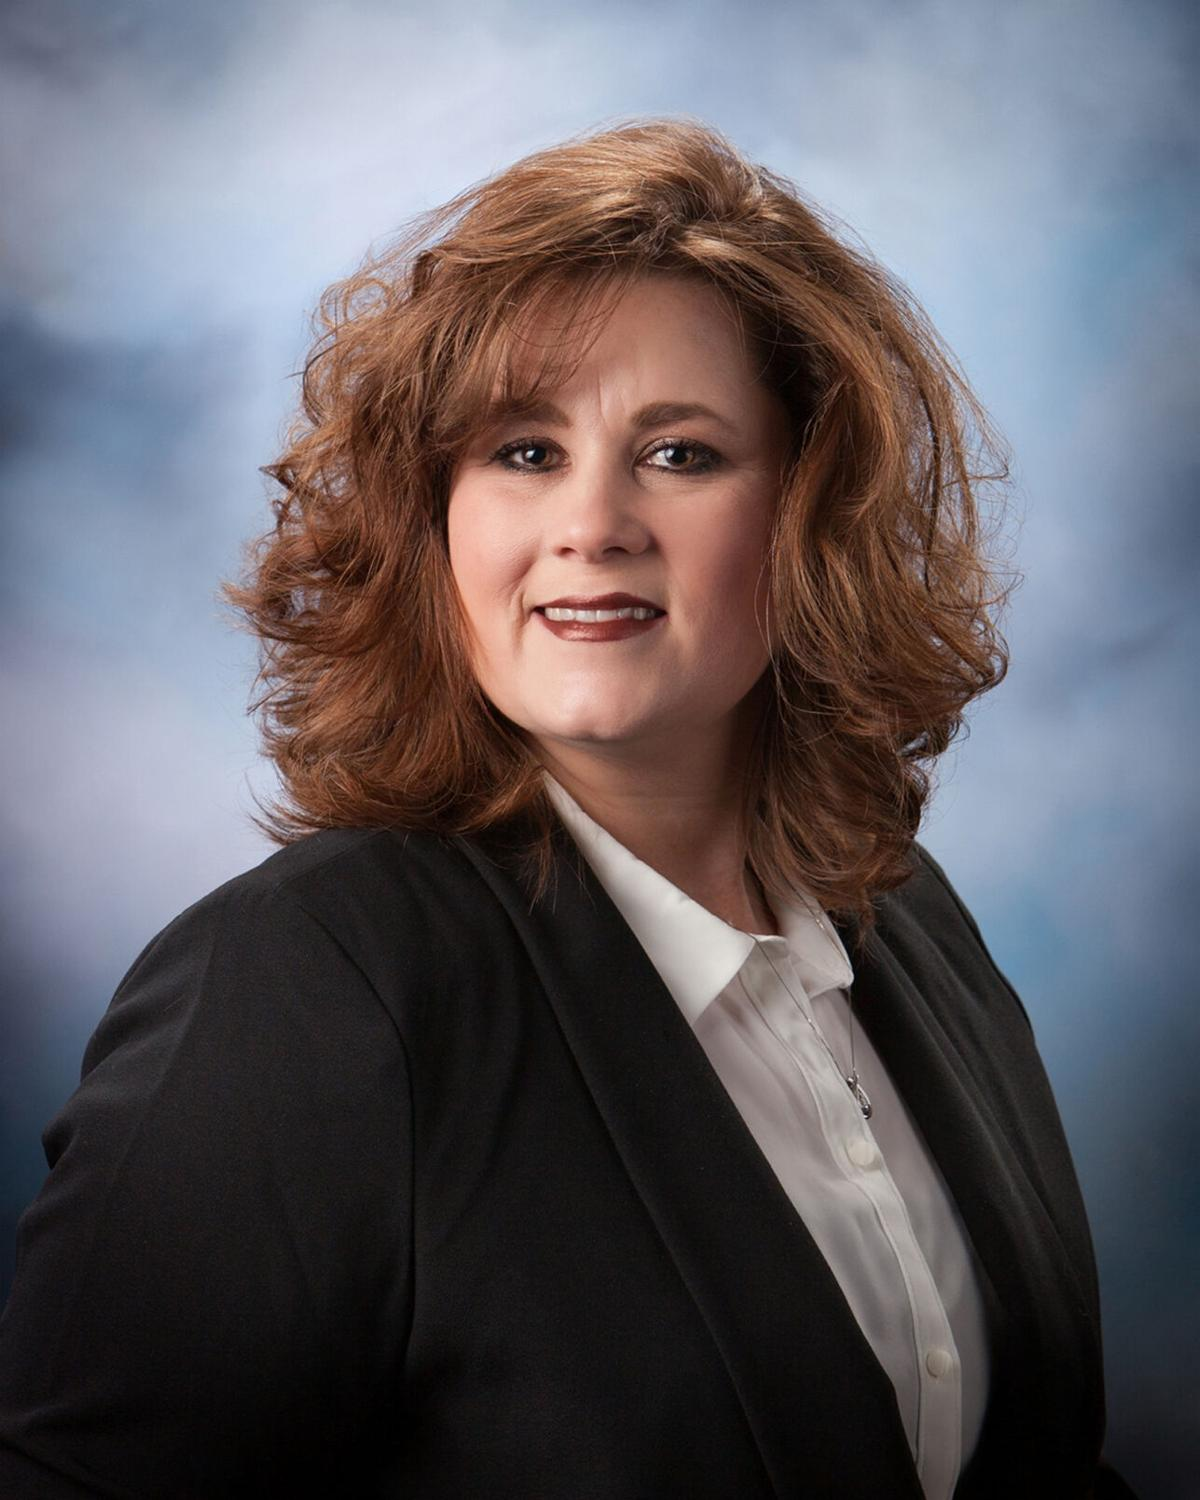 United Way announces two new board members Tracy Wimmer and Sarah Ingerson join the board of directors